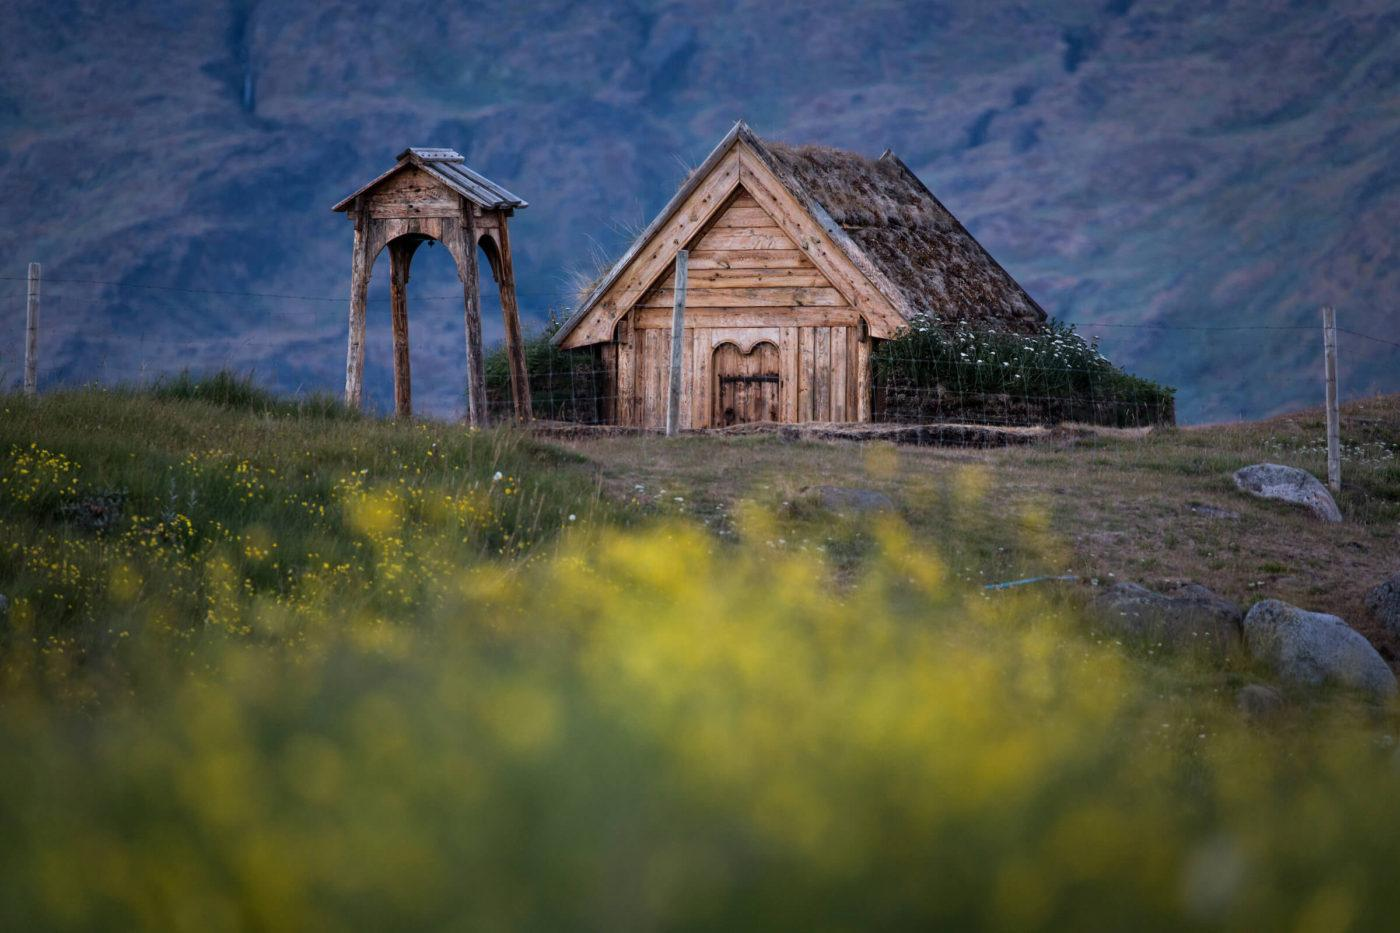 Tjodhilde's Church at the norse reconstruction site in Qassiarsuk in South Greenland